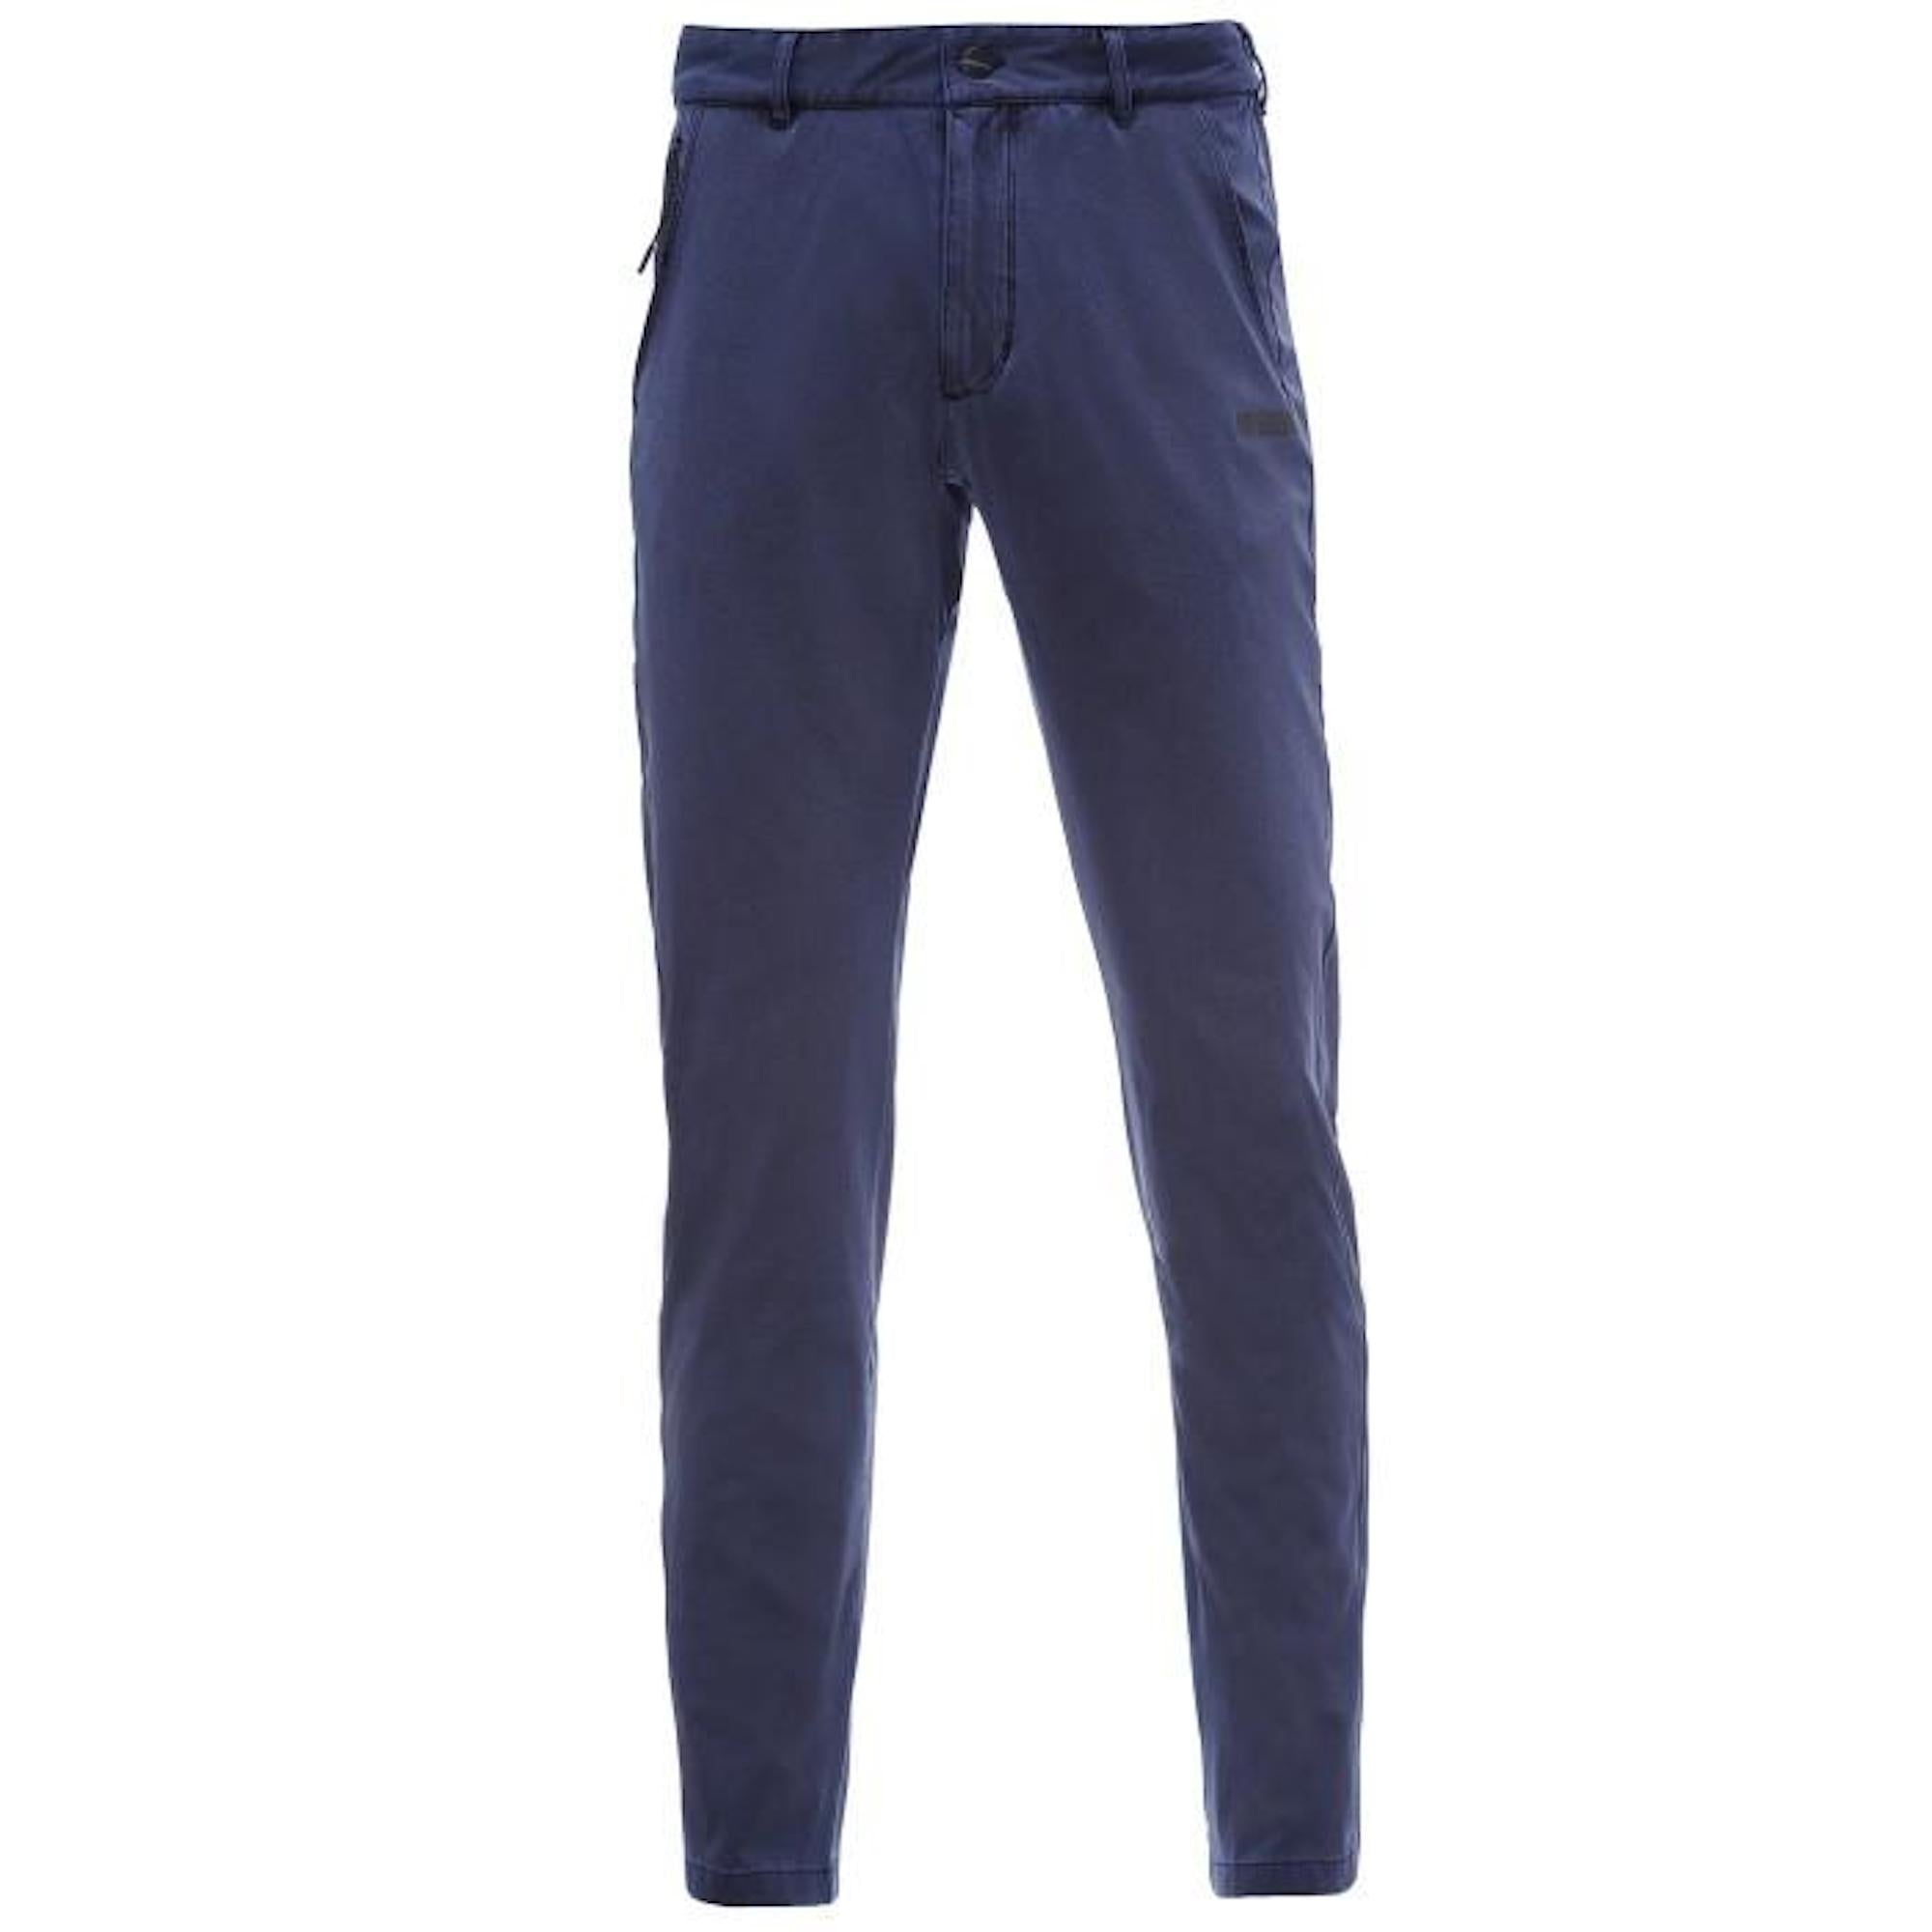 Mens Chino Pants - PRO Fit Rinsed Finish - Navy